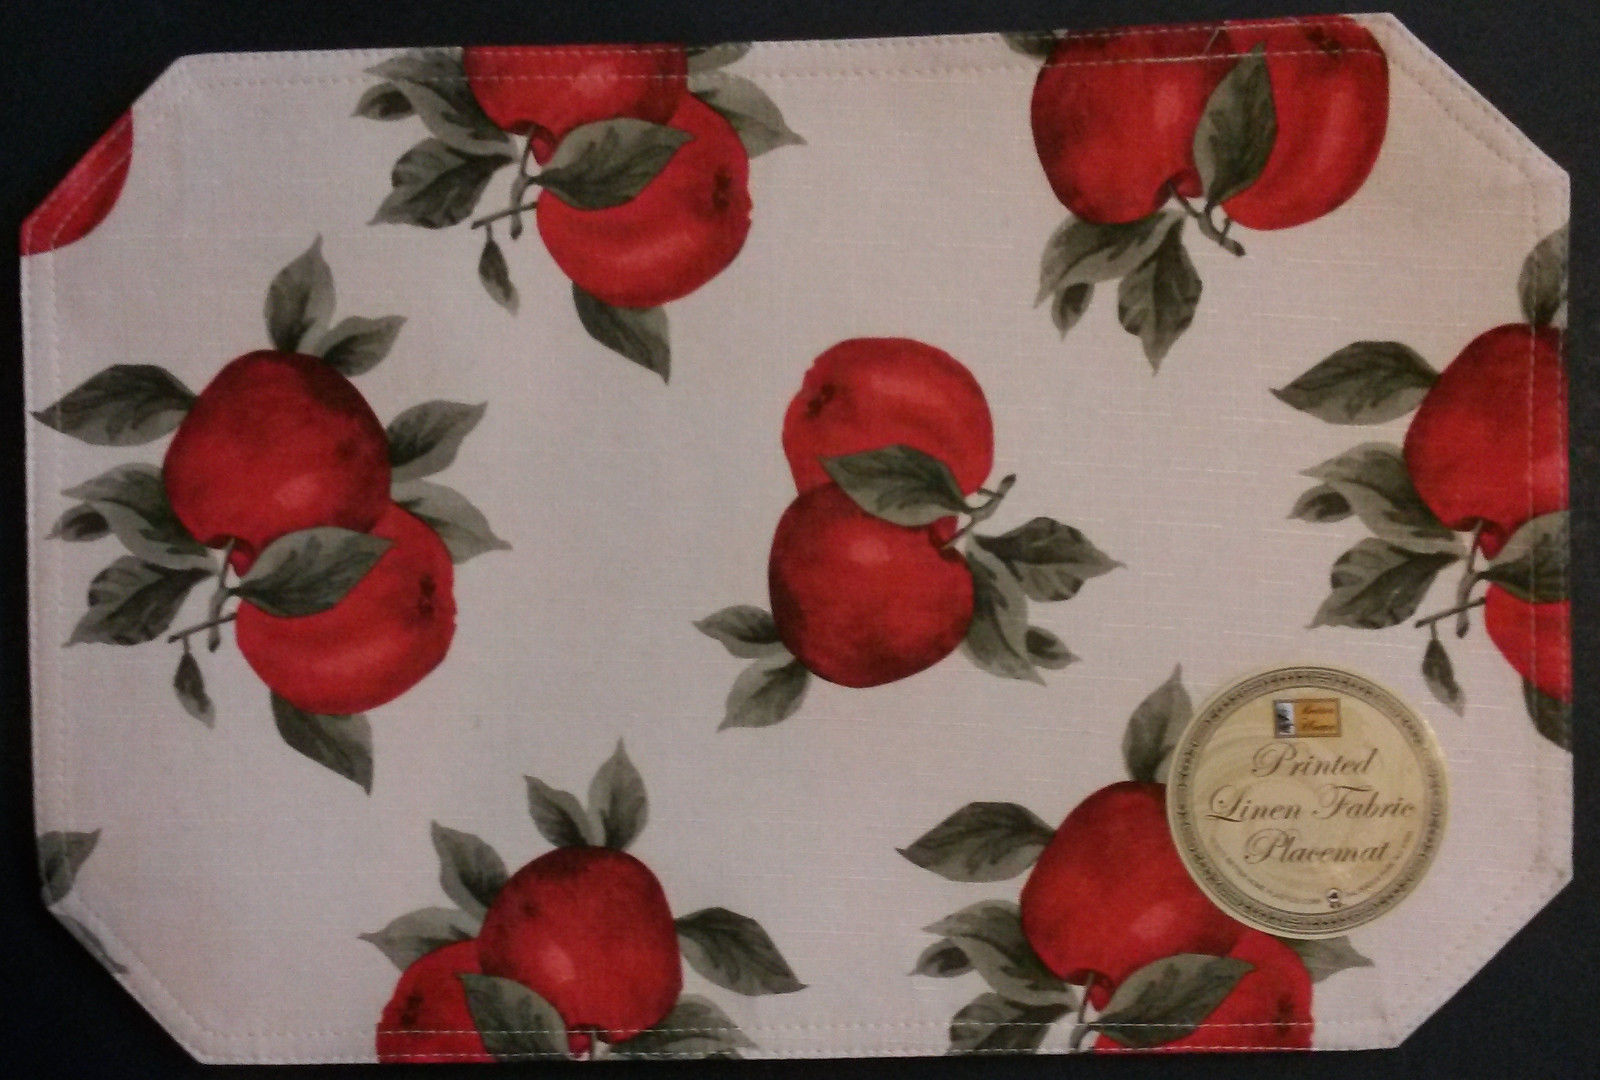 APPLE FABRIC PLACEMATS Set of 4 Red Apples 12x18 Fruit Linen Look NEW